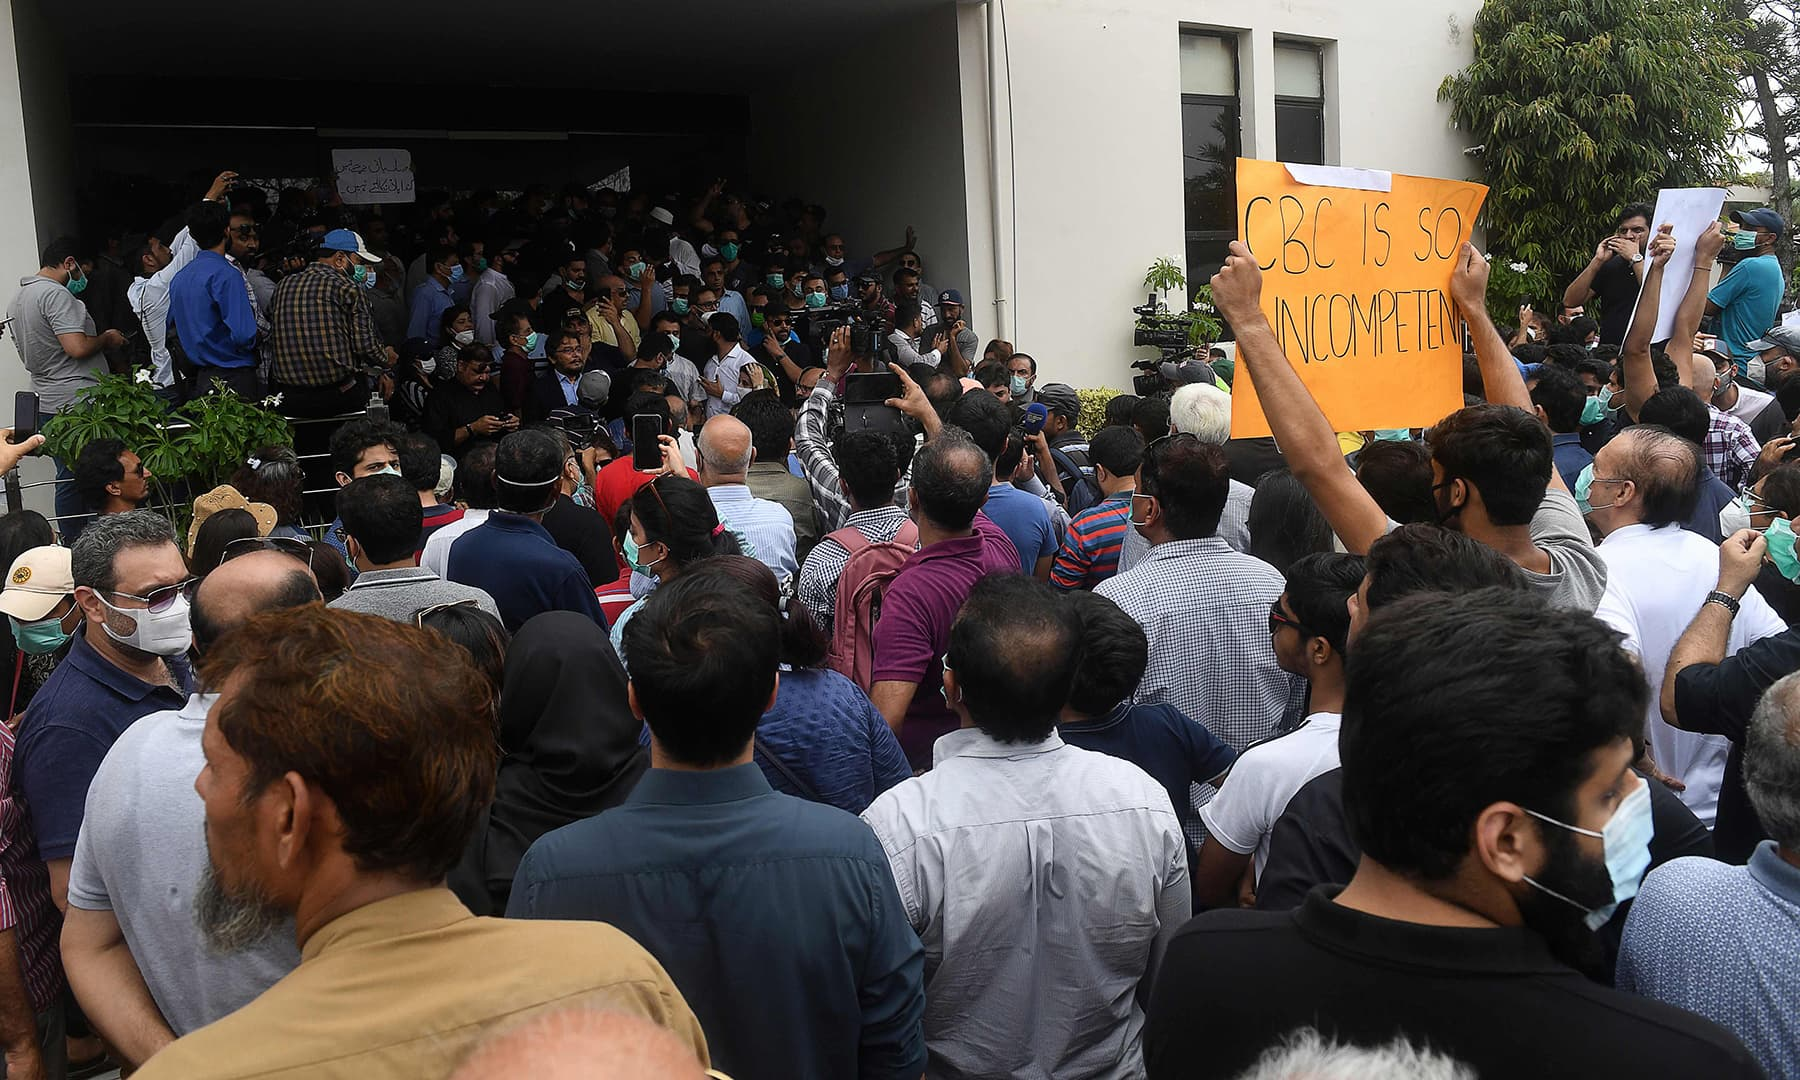 Residents of DHA hold placards as they gather outside the CBC office to protest on Monday. — AFP